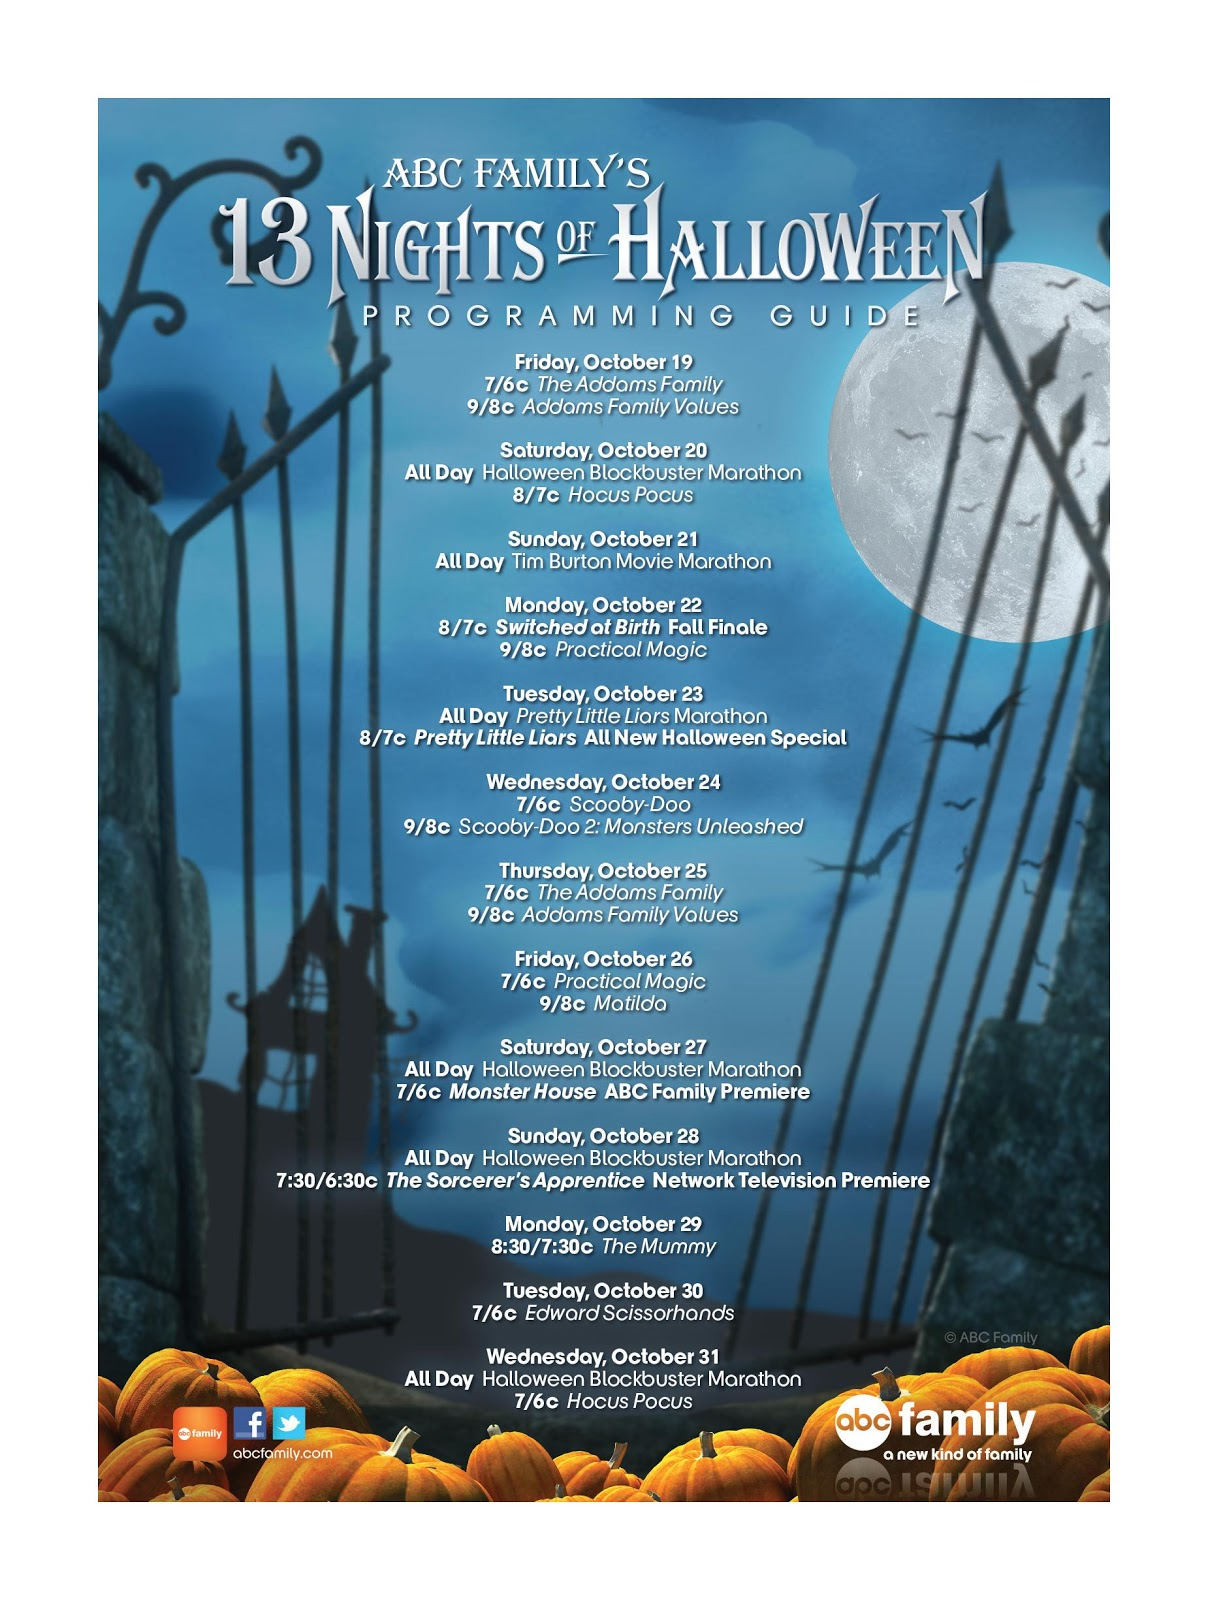 The Green Eyed Momma: 13 Nights of Halloween with ABC Family